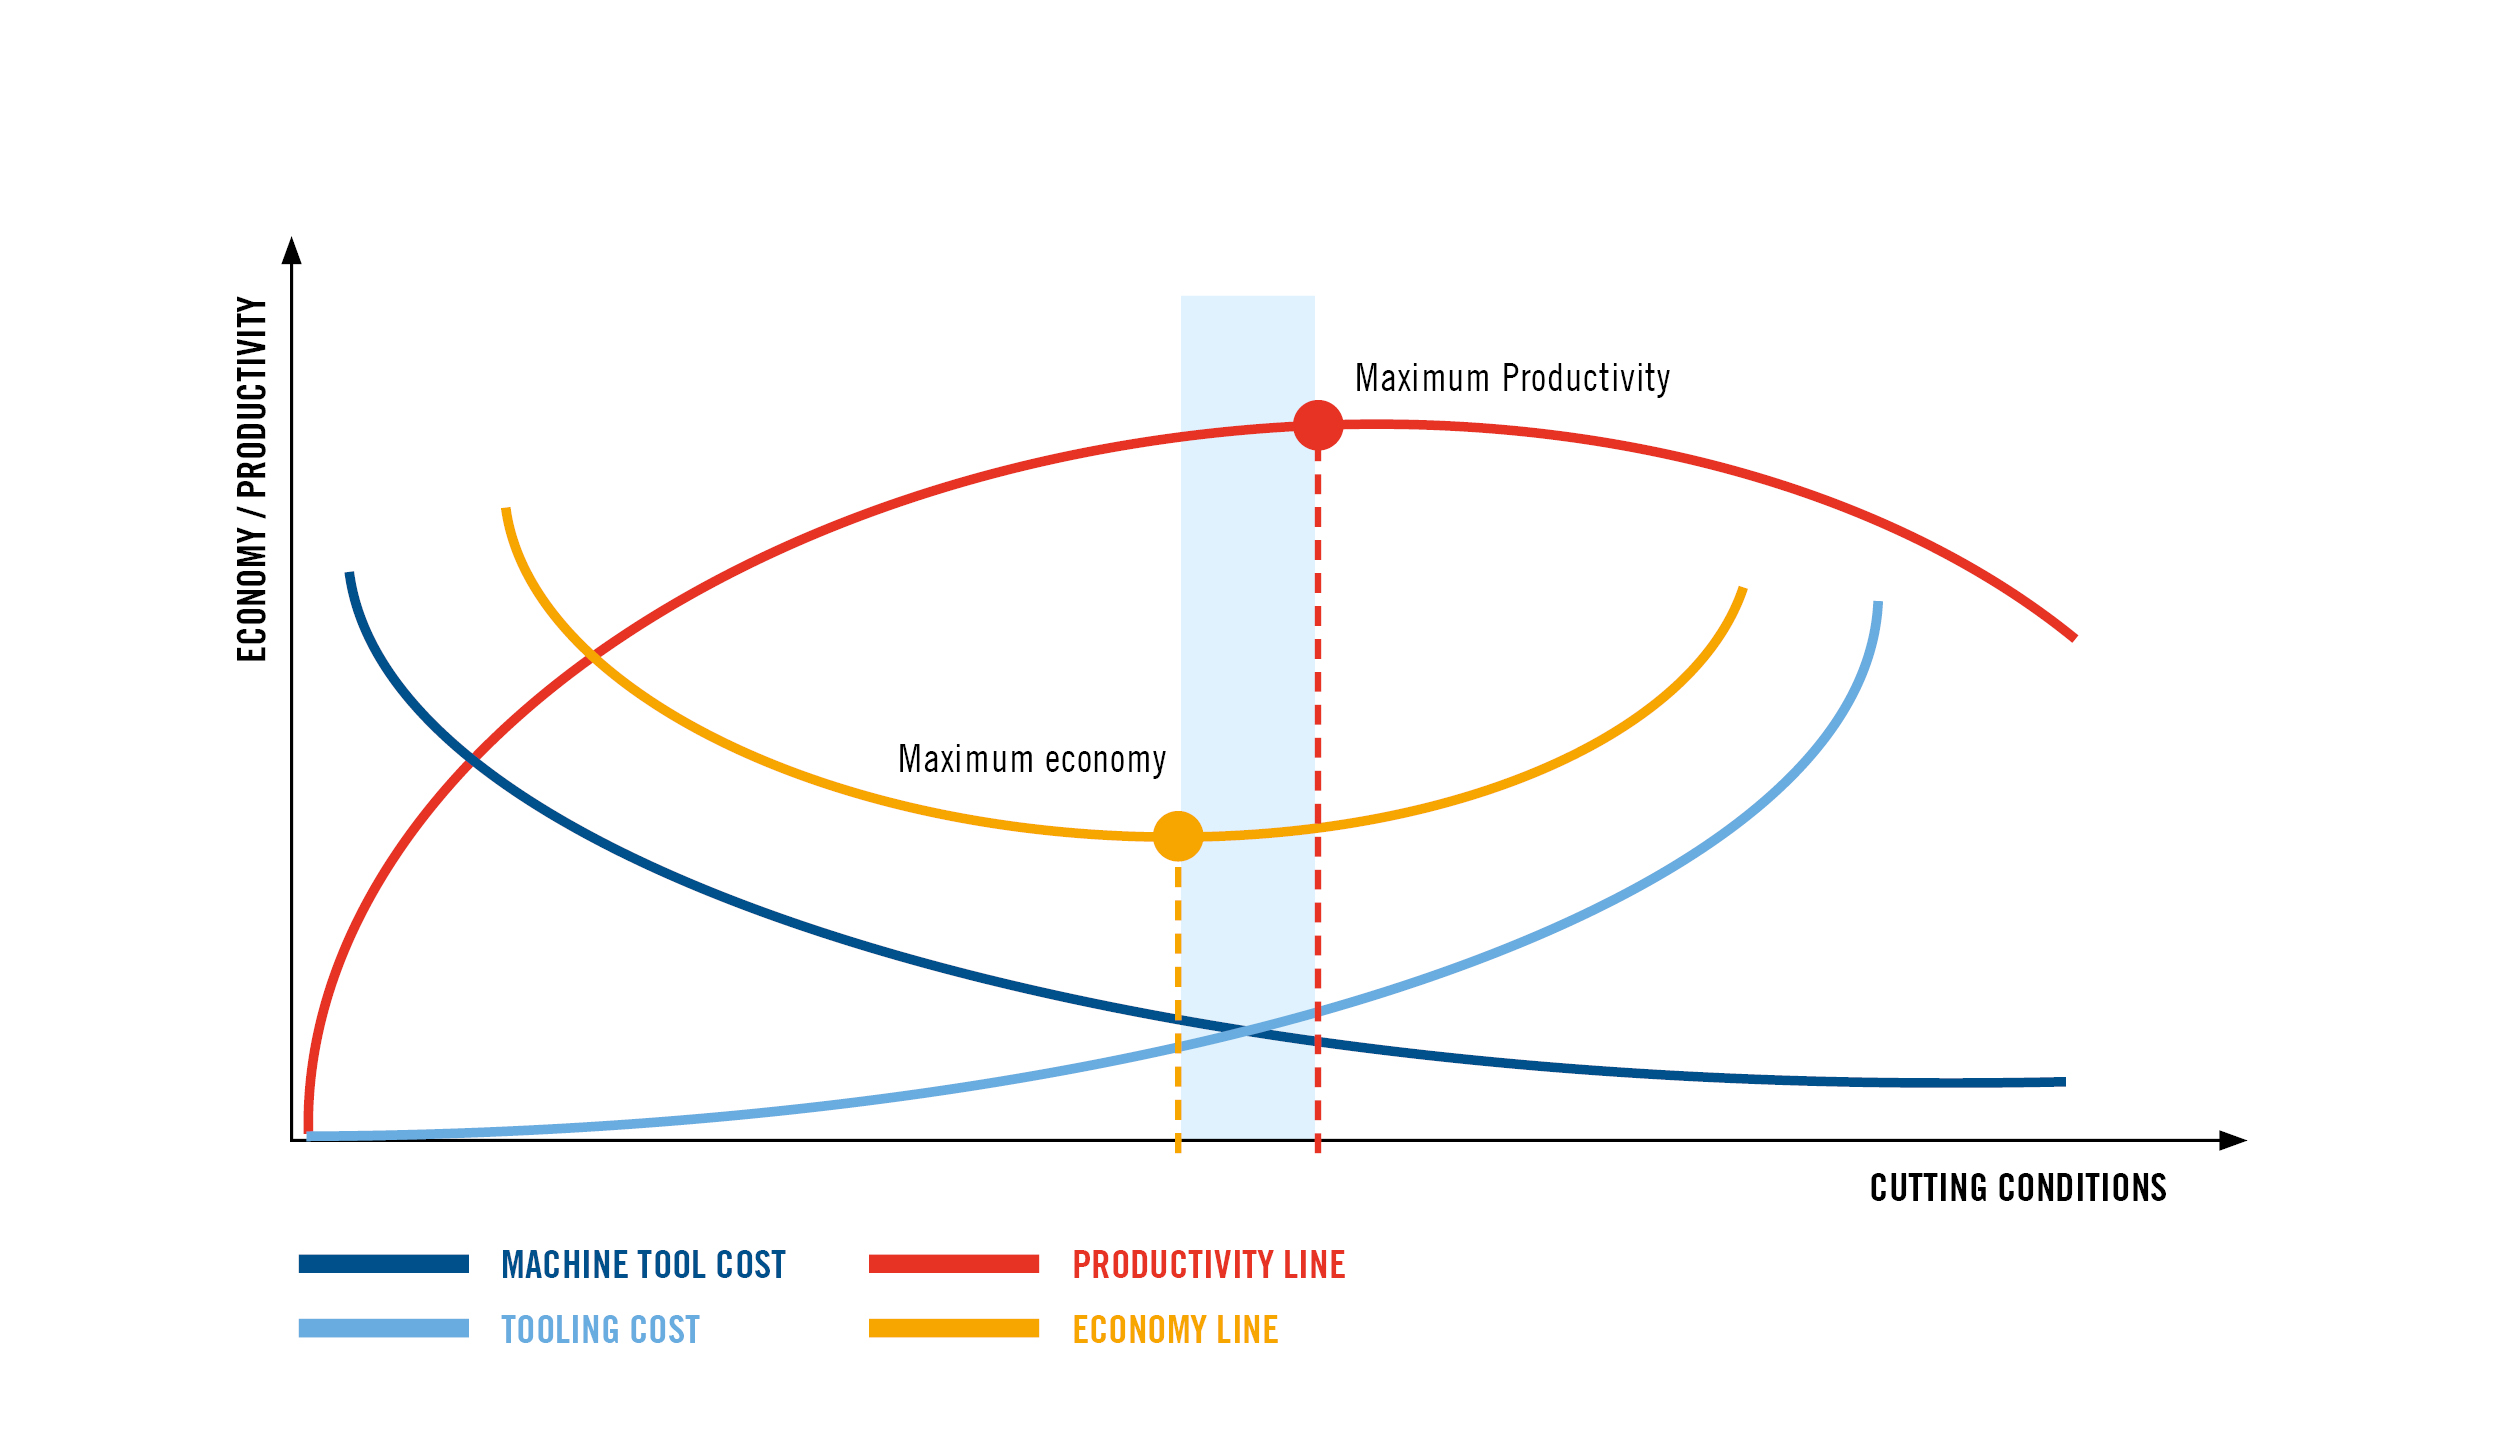 Figure 4 – relationship between cutting conditions, productivity and machining costs. This figure shows a simplified model, not taking into account waste factors.